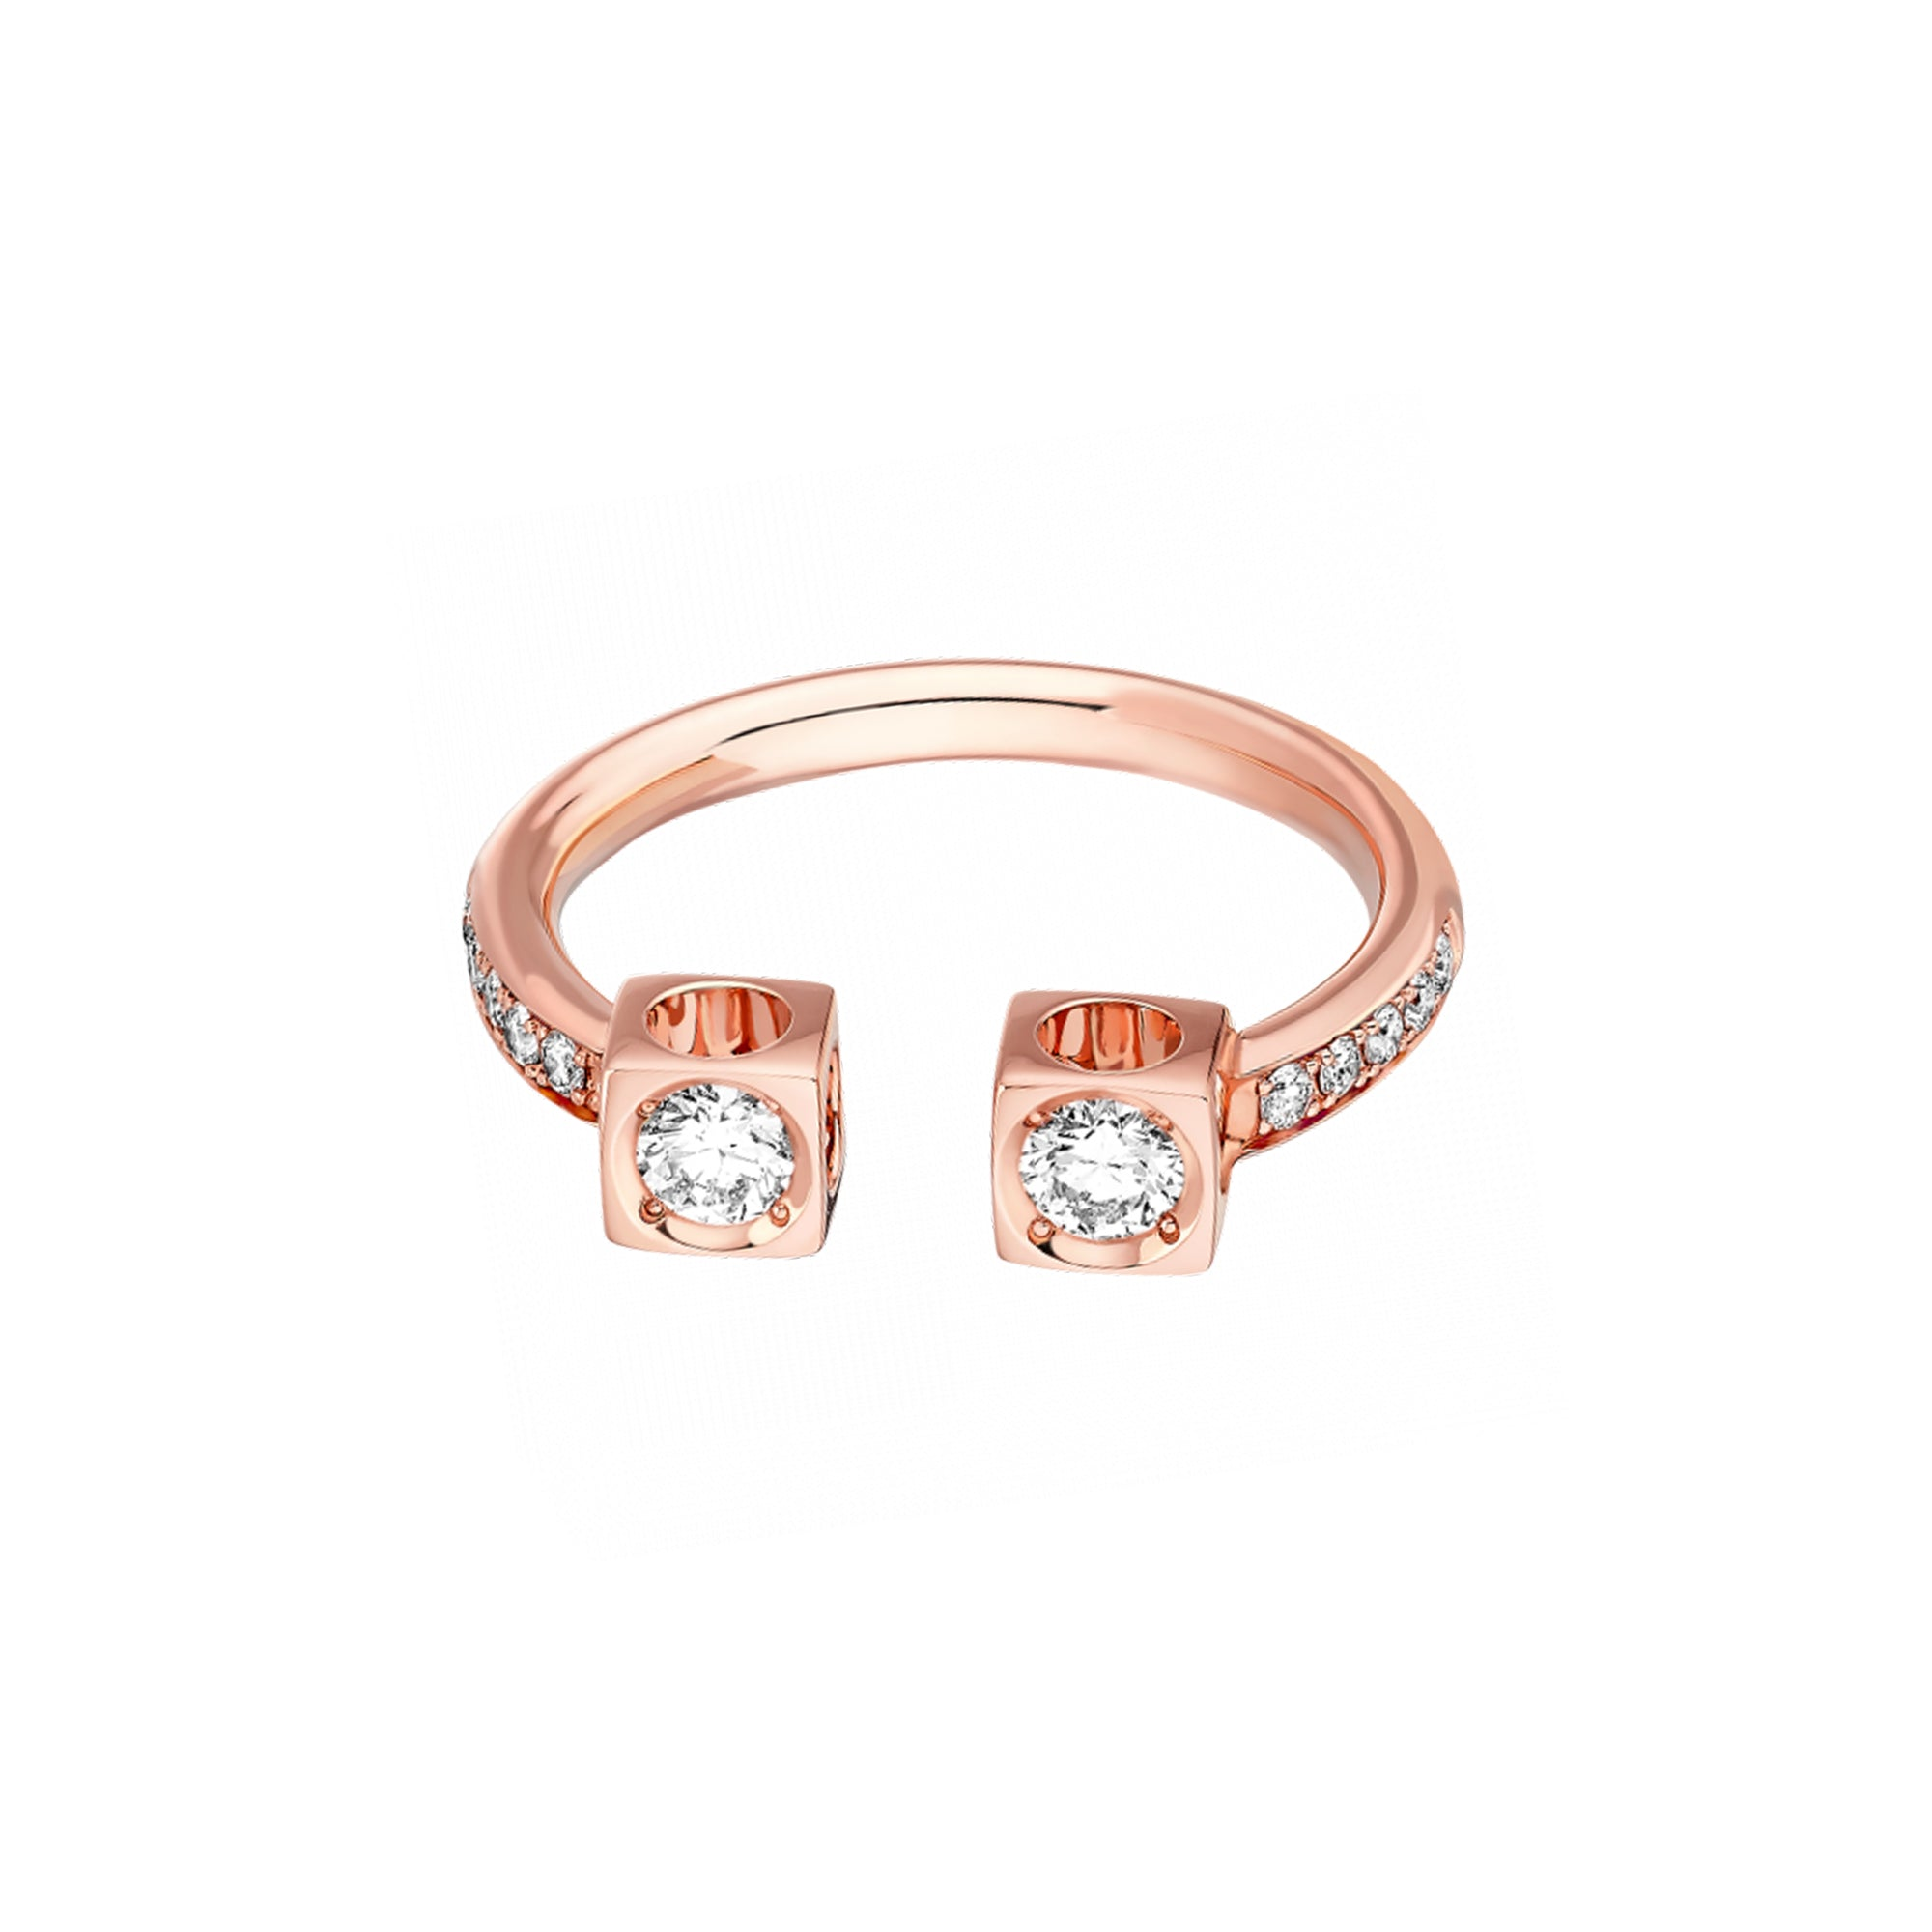 Dinh Van Le Cube Diamant Large Ring - Rose Gold - Rings - Broken English Jewelry